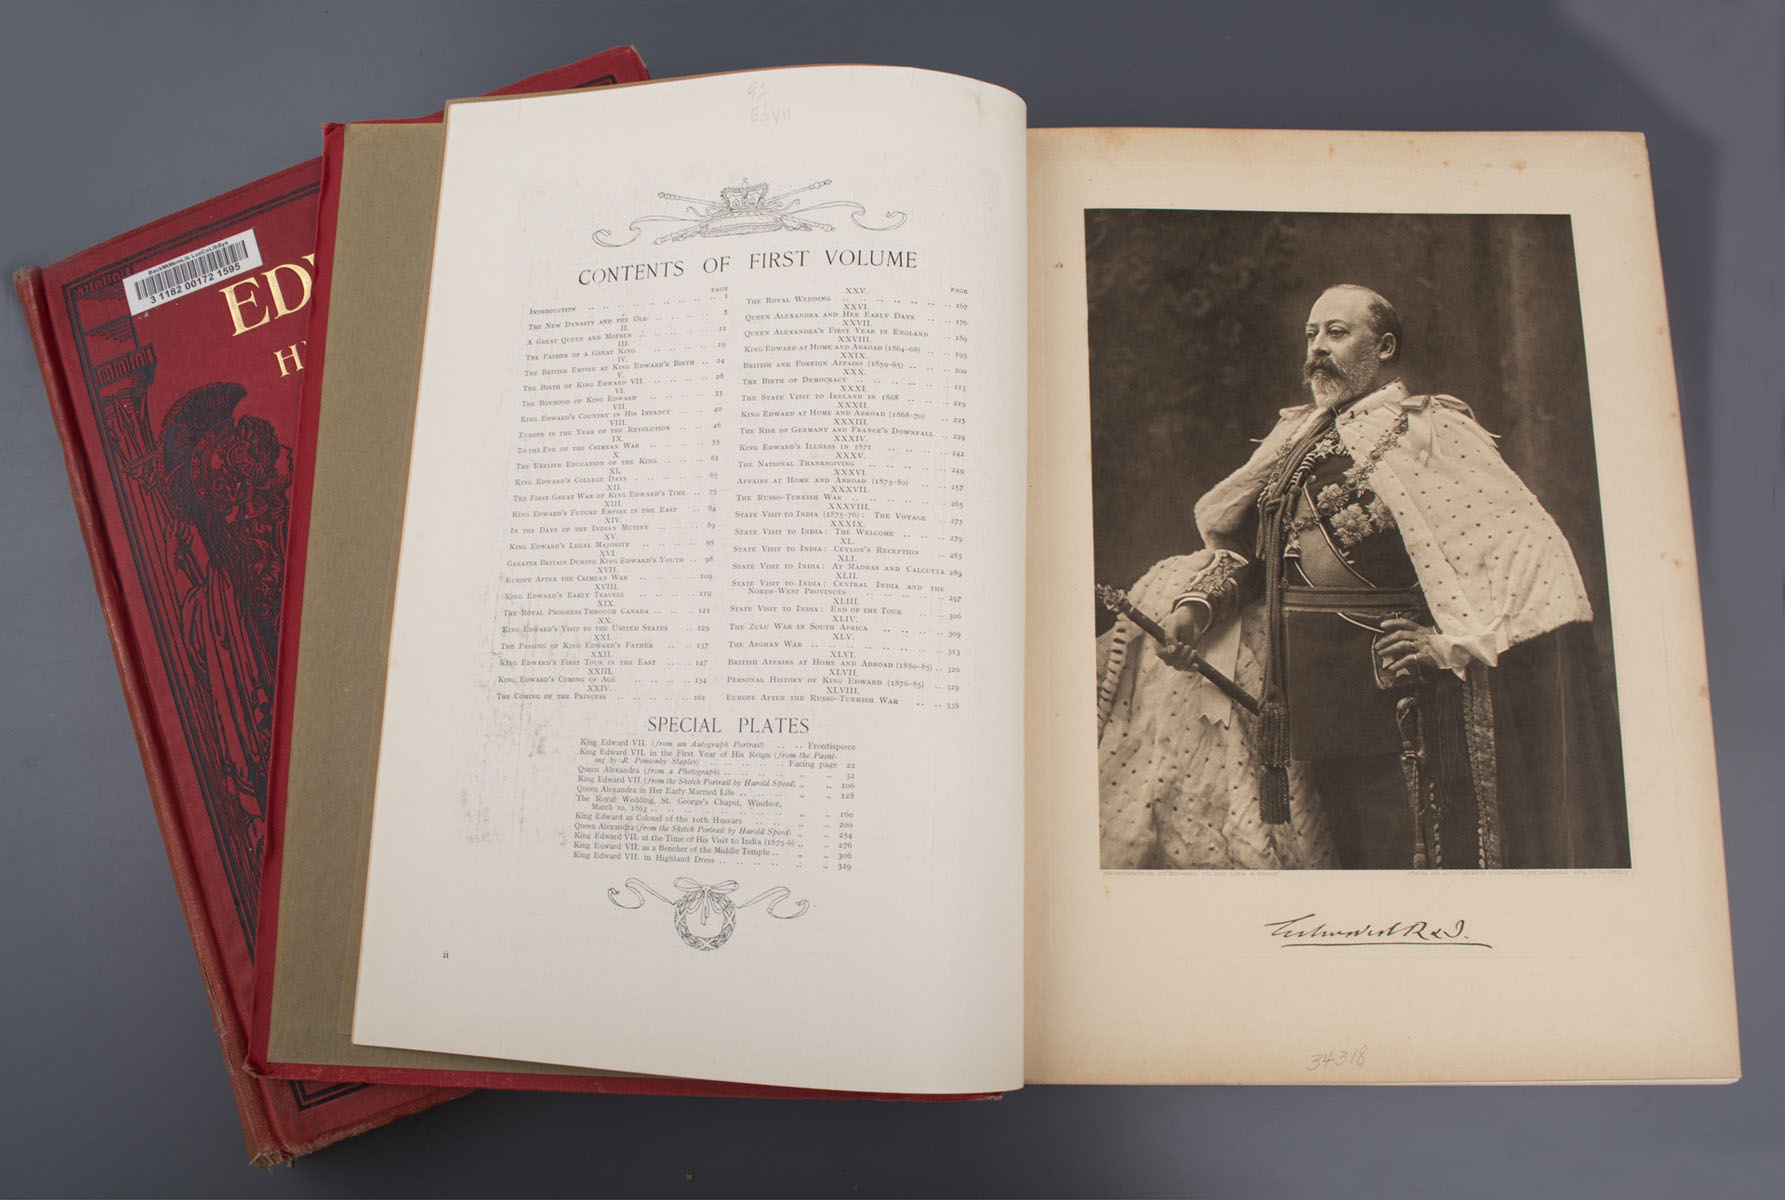 Edward VII: His Life and Times